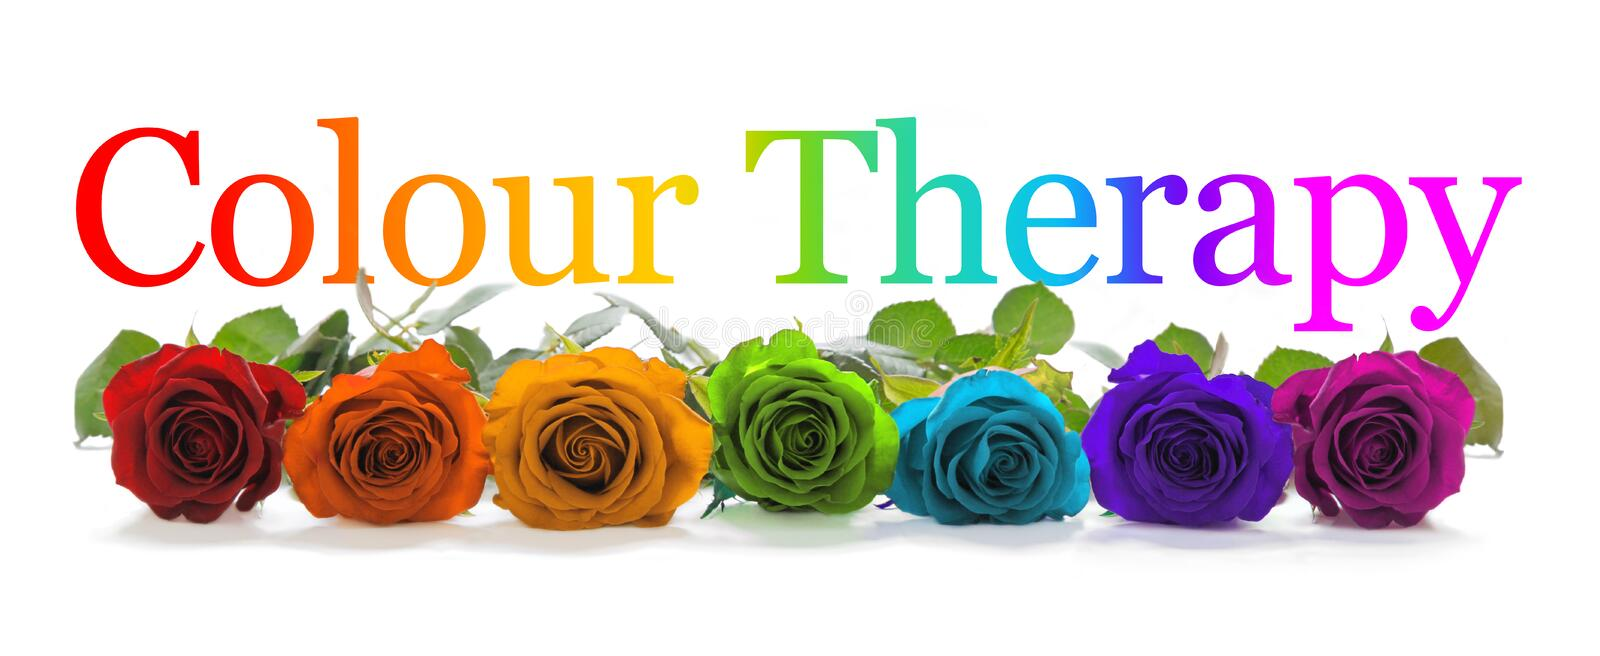 Colour Healing Therapy Rose Banner stock image